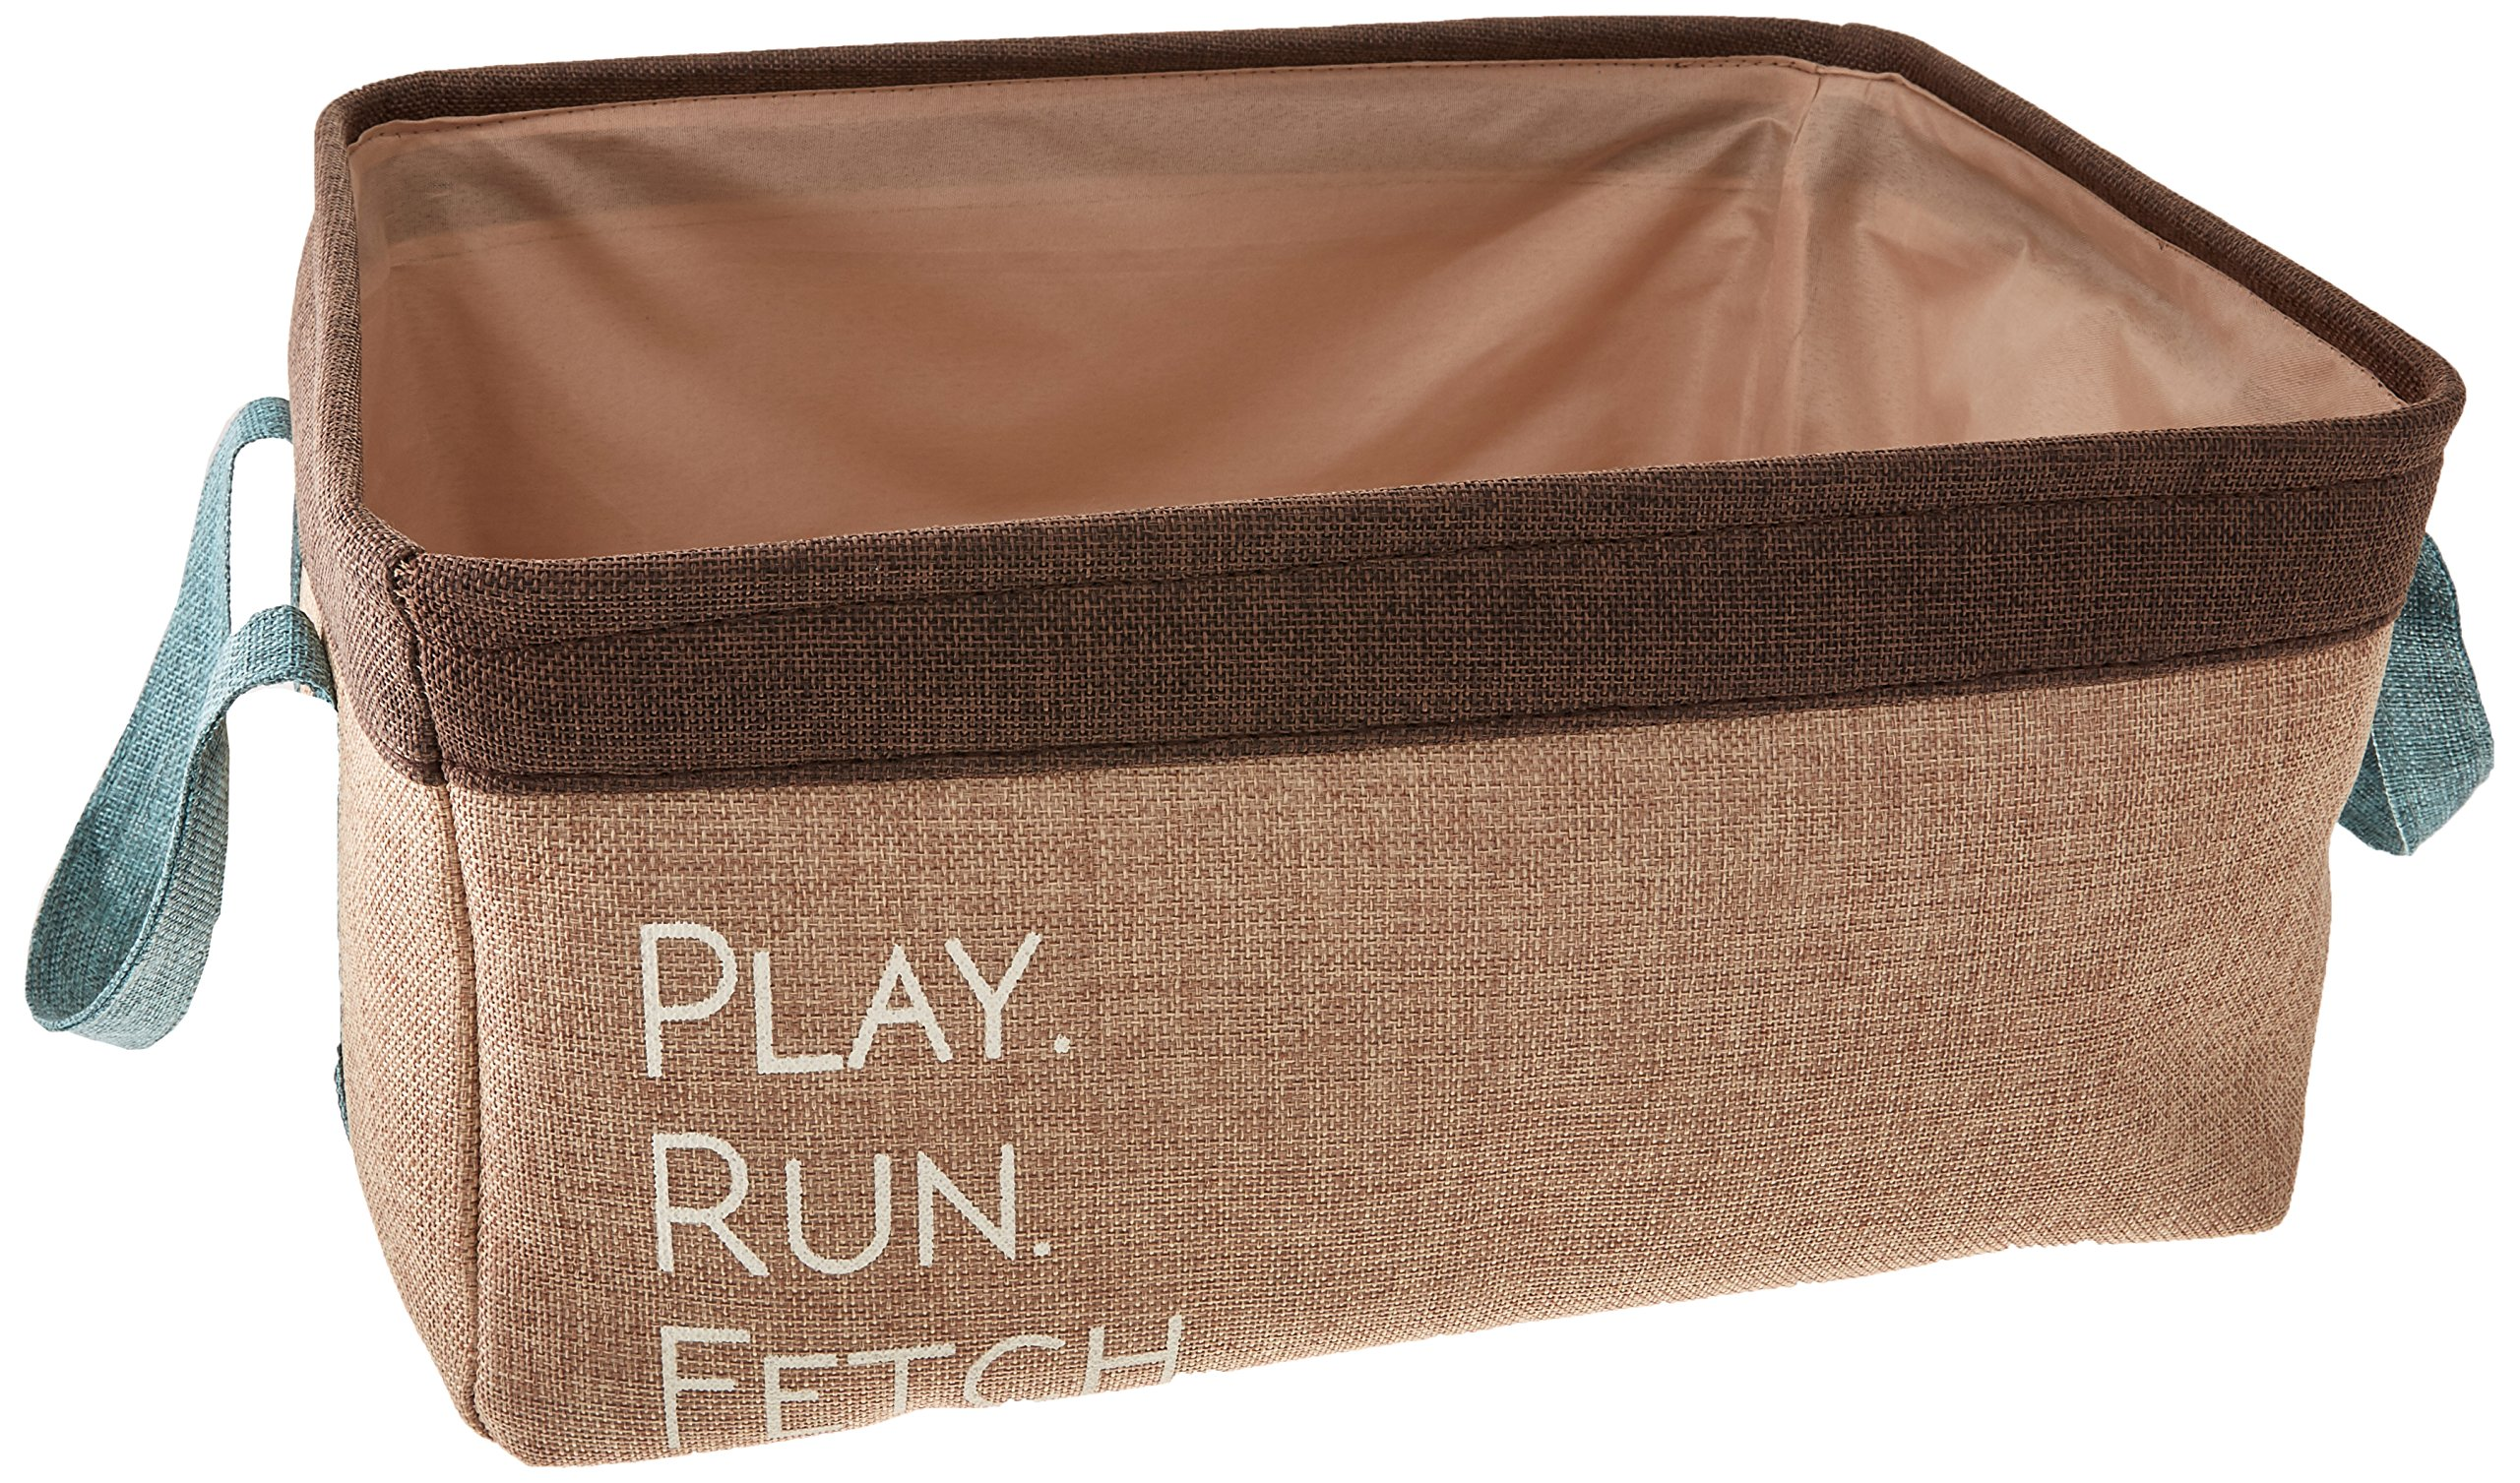 Winifred & Lily Pet Toy and Accessory Storage Bin, Organizer Storage Basket for Pet Toys, Blankets, Leashes and Food in Embroidered ''Play, Run, Fetch'', Taupe